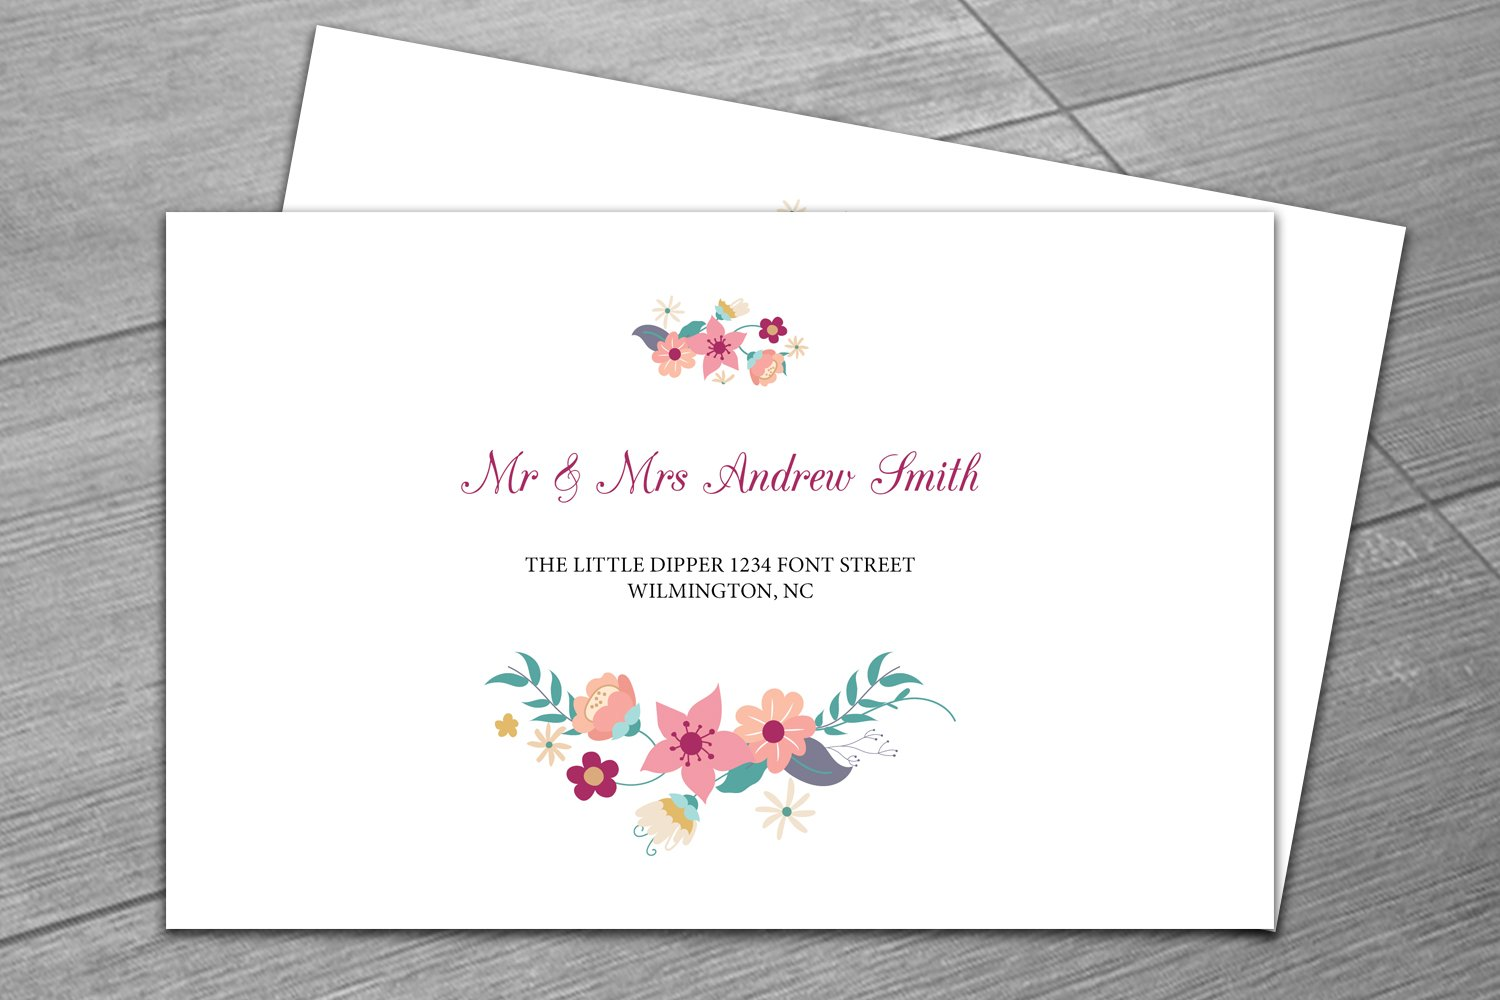 Wedding Invitations Graphic Design Mockup